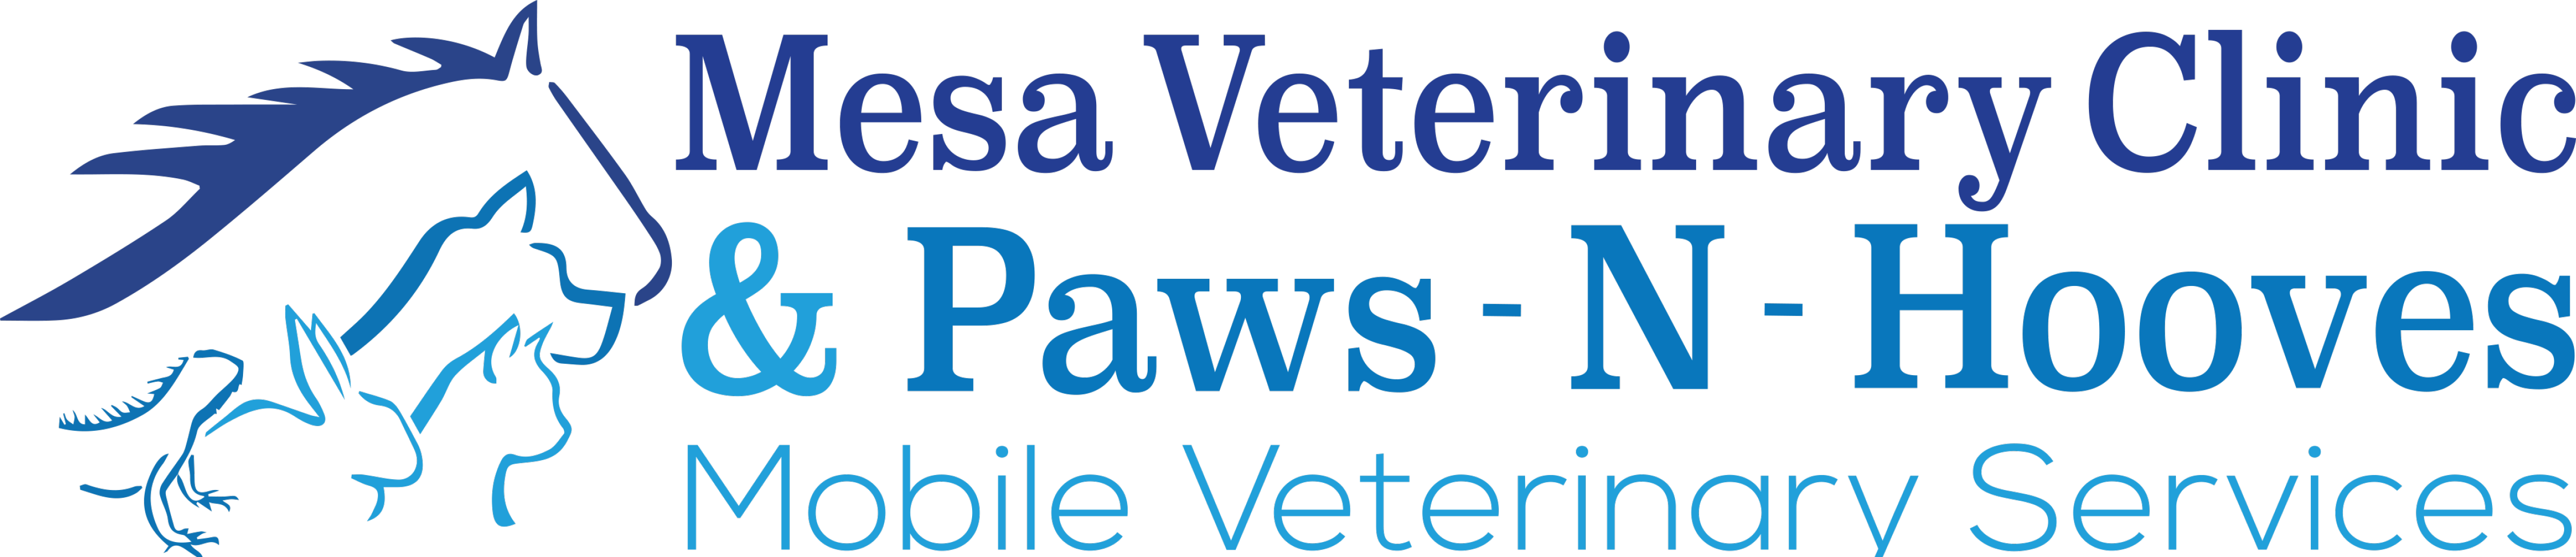 Mesa Veterinary Clinic & Paws N Hooves Mobile Vet